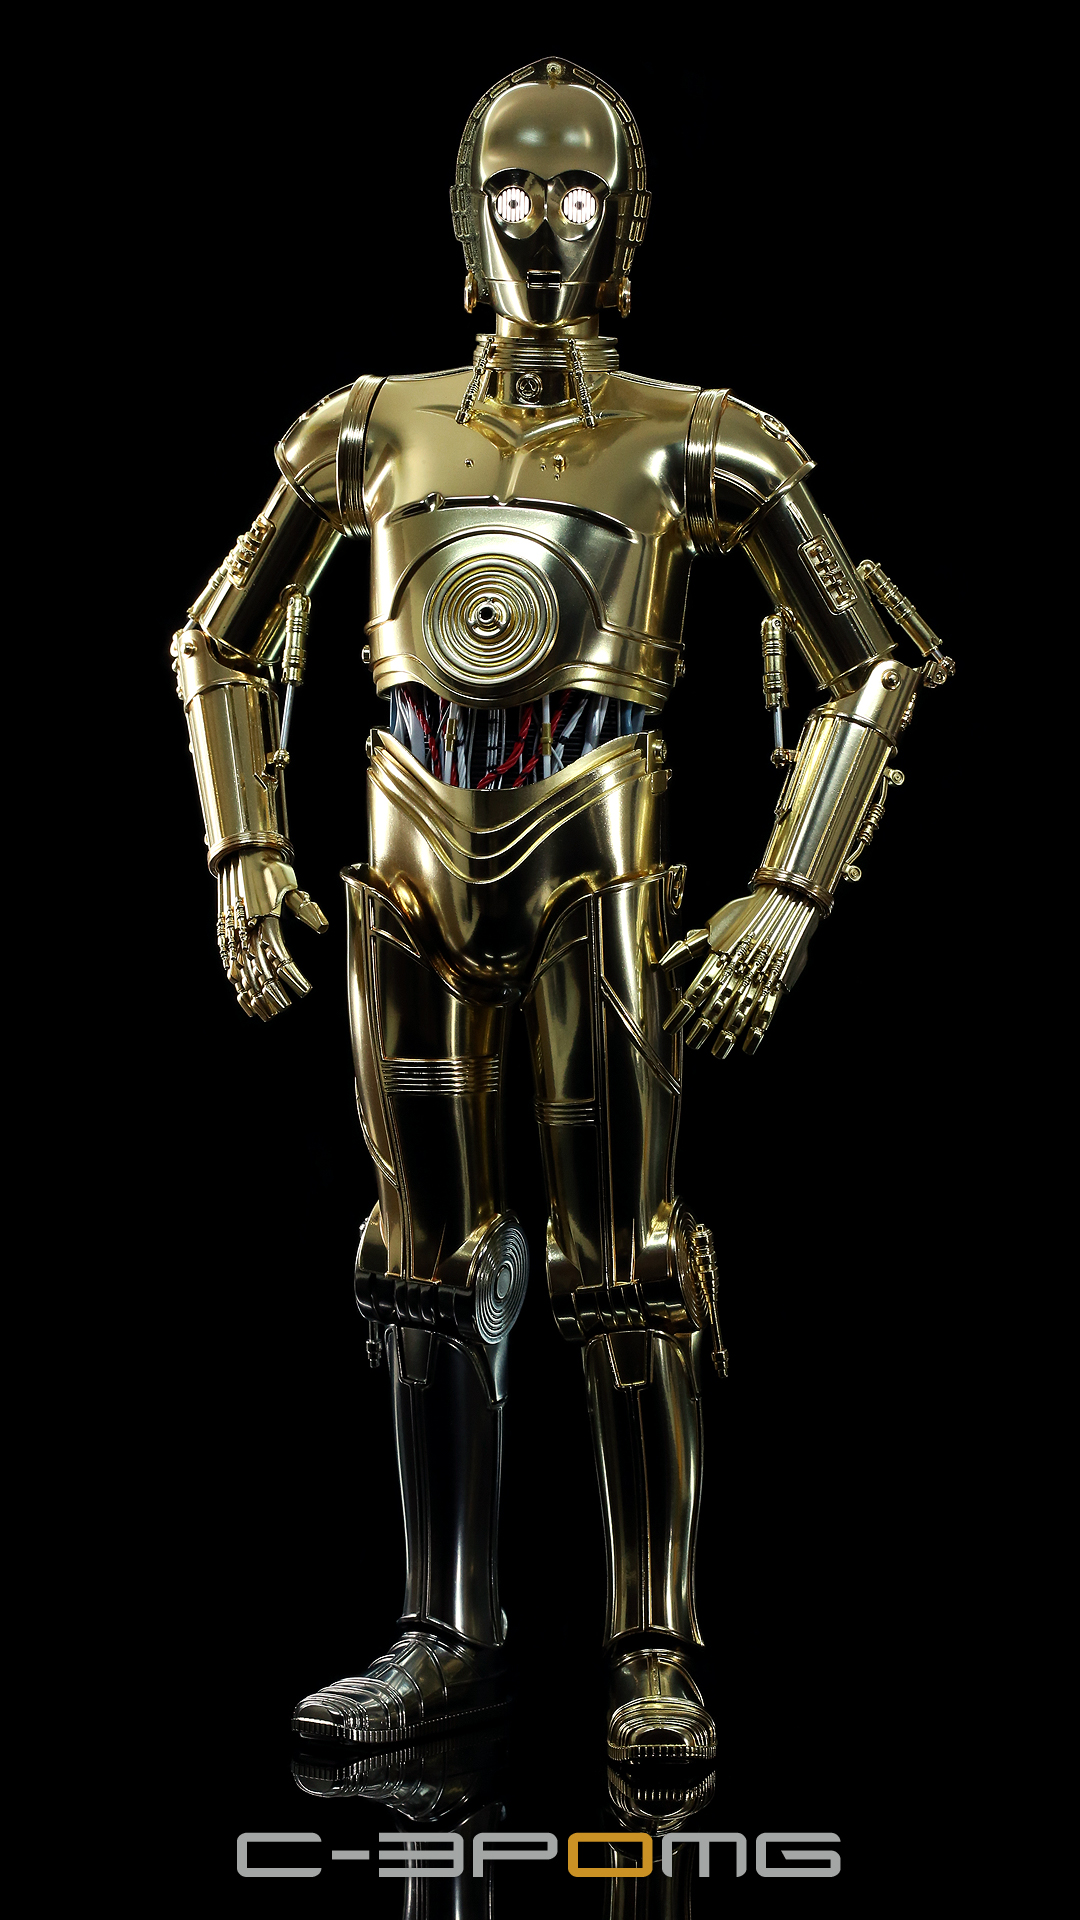 [Bandai] Star Wars: C-3PO - Perfect Model 1/6 scale - LANÇADO!!! - Página 2 C-3PO1020_zps8f1ea518